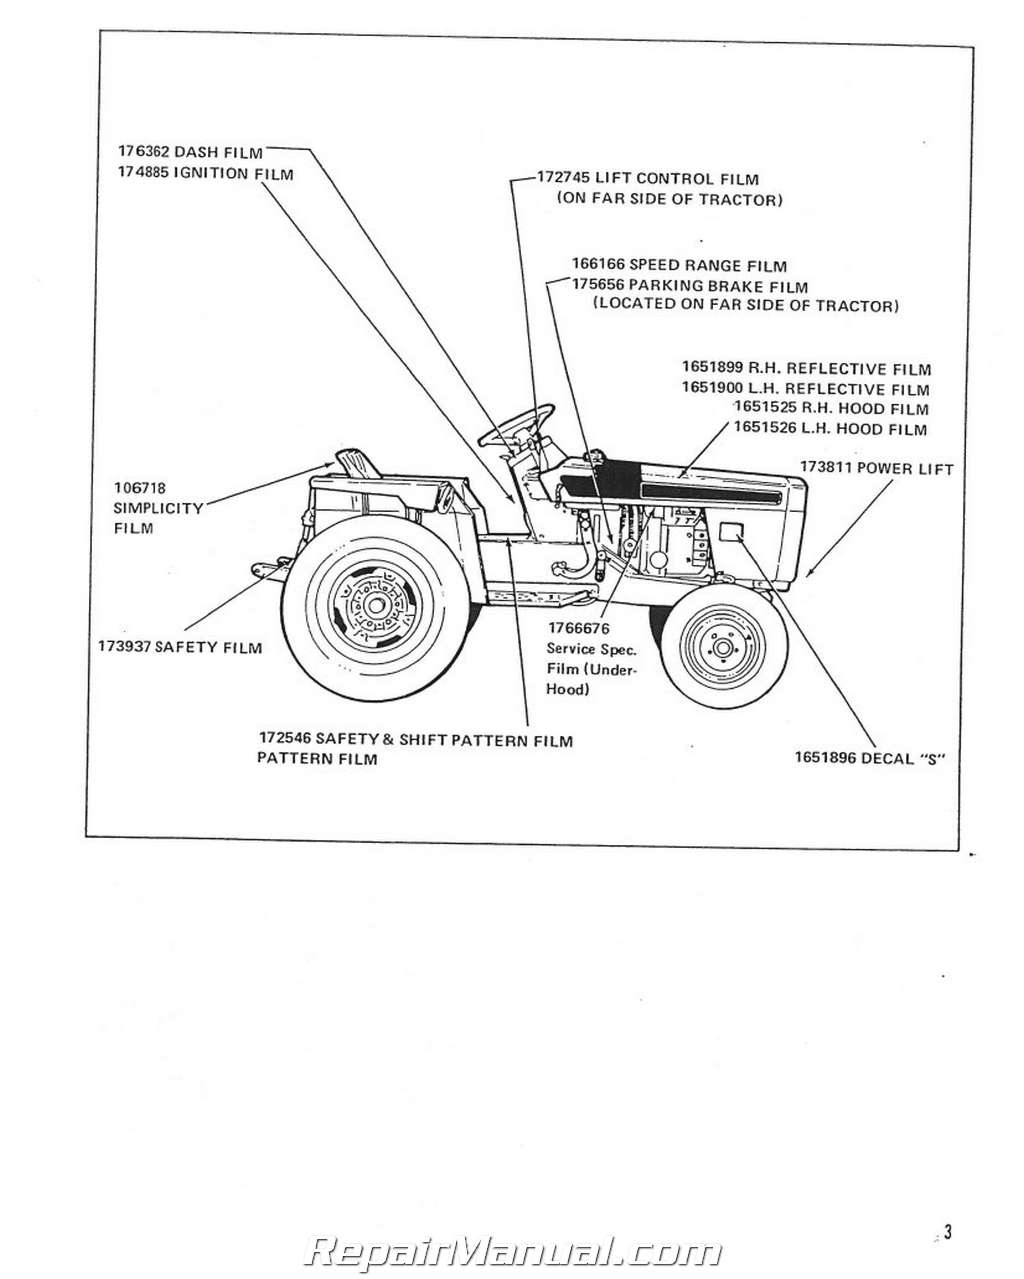 Power Max Wiring Diagram Page 4 And Schematics Allis Chalmers Lawn Mower 2 Heating Spare Source Simplicity 9020 720 Garden Rh Repairmanual Com Basic